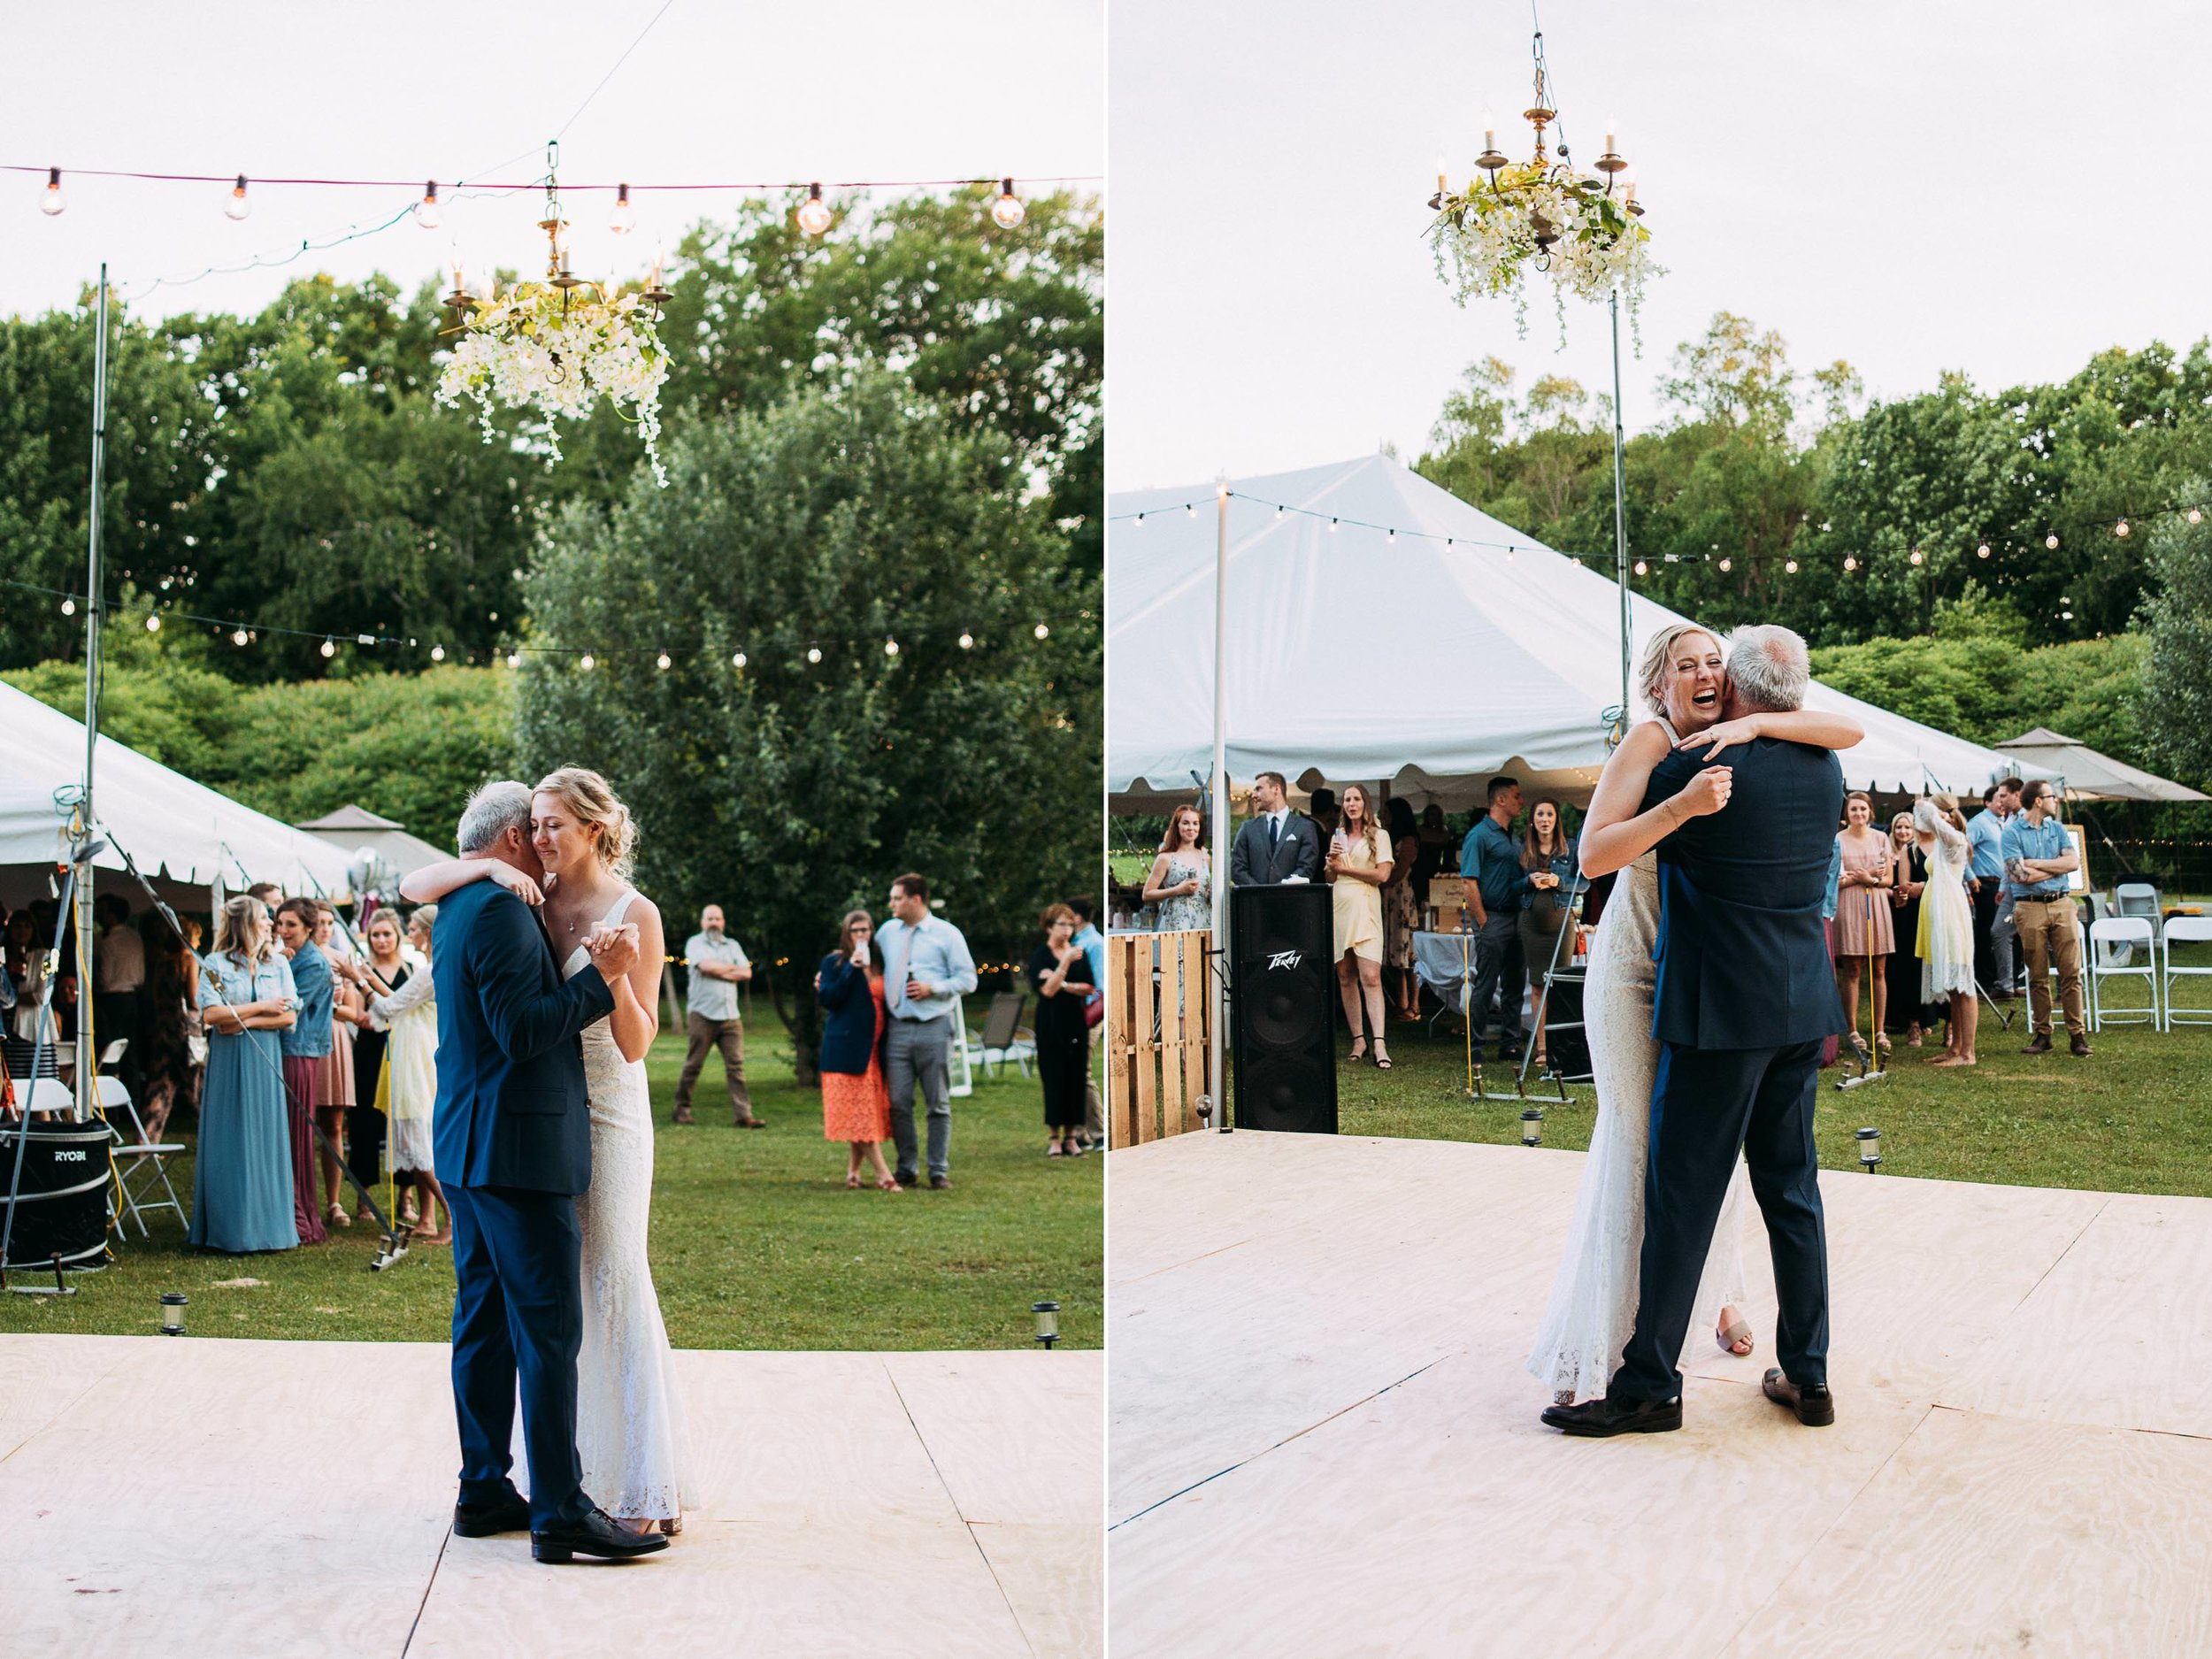 Carley_Trammell_GreenBay_Backyard_Wedding_Blog-99.jpg